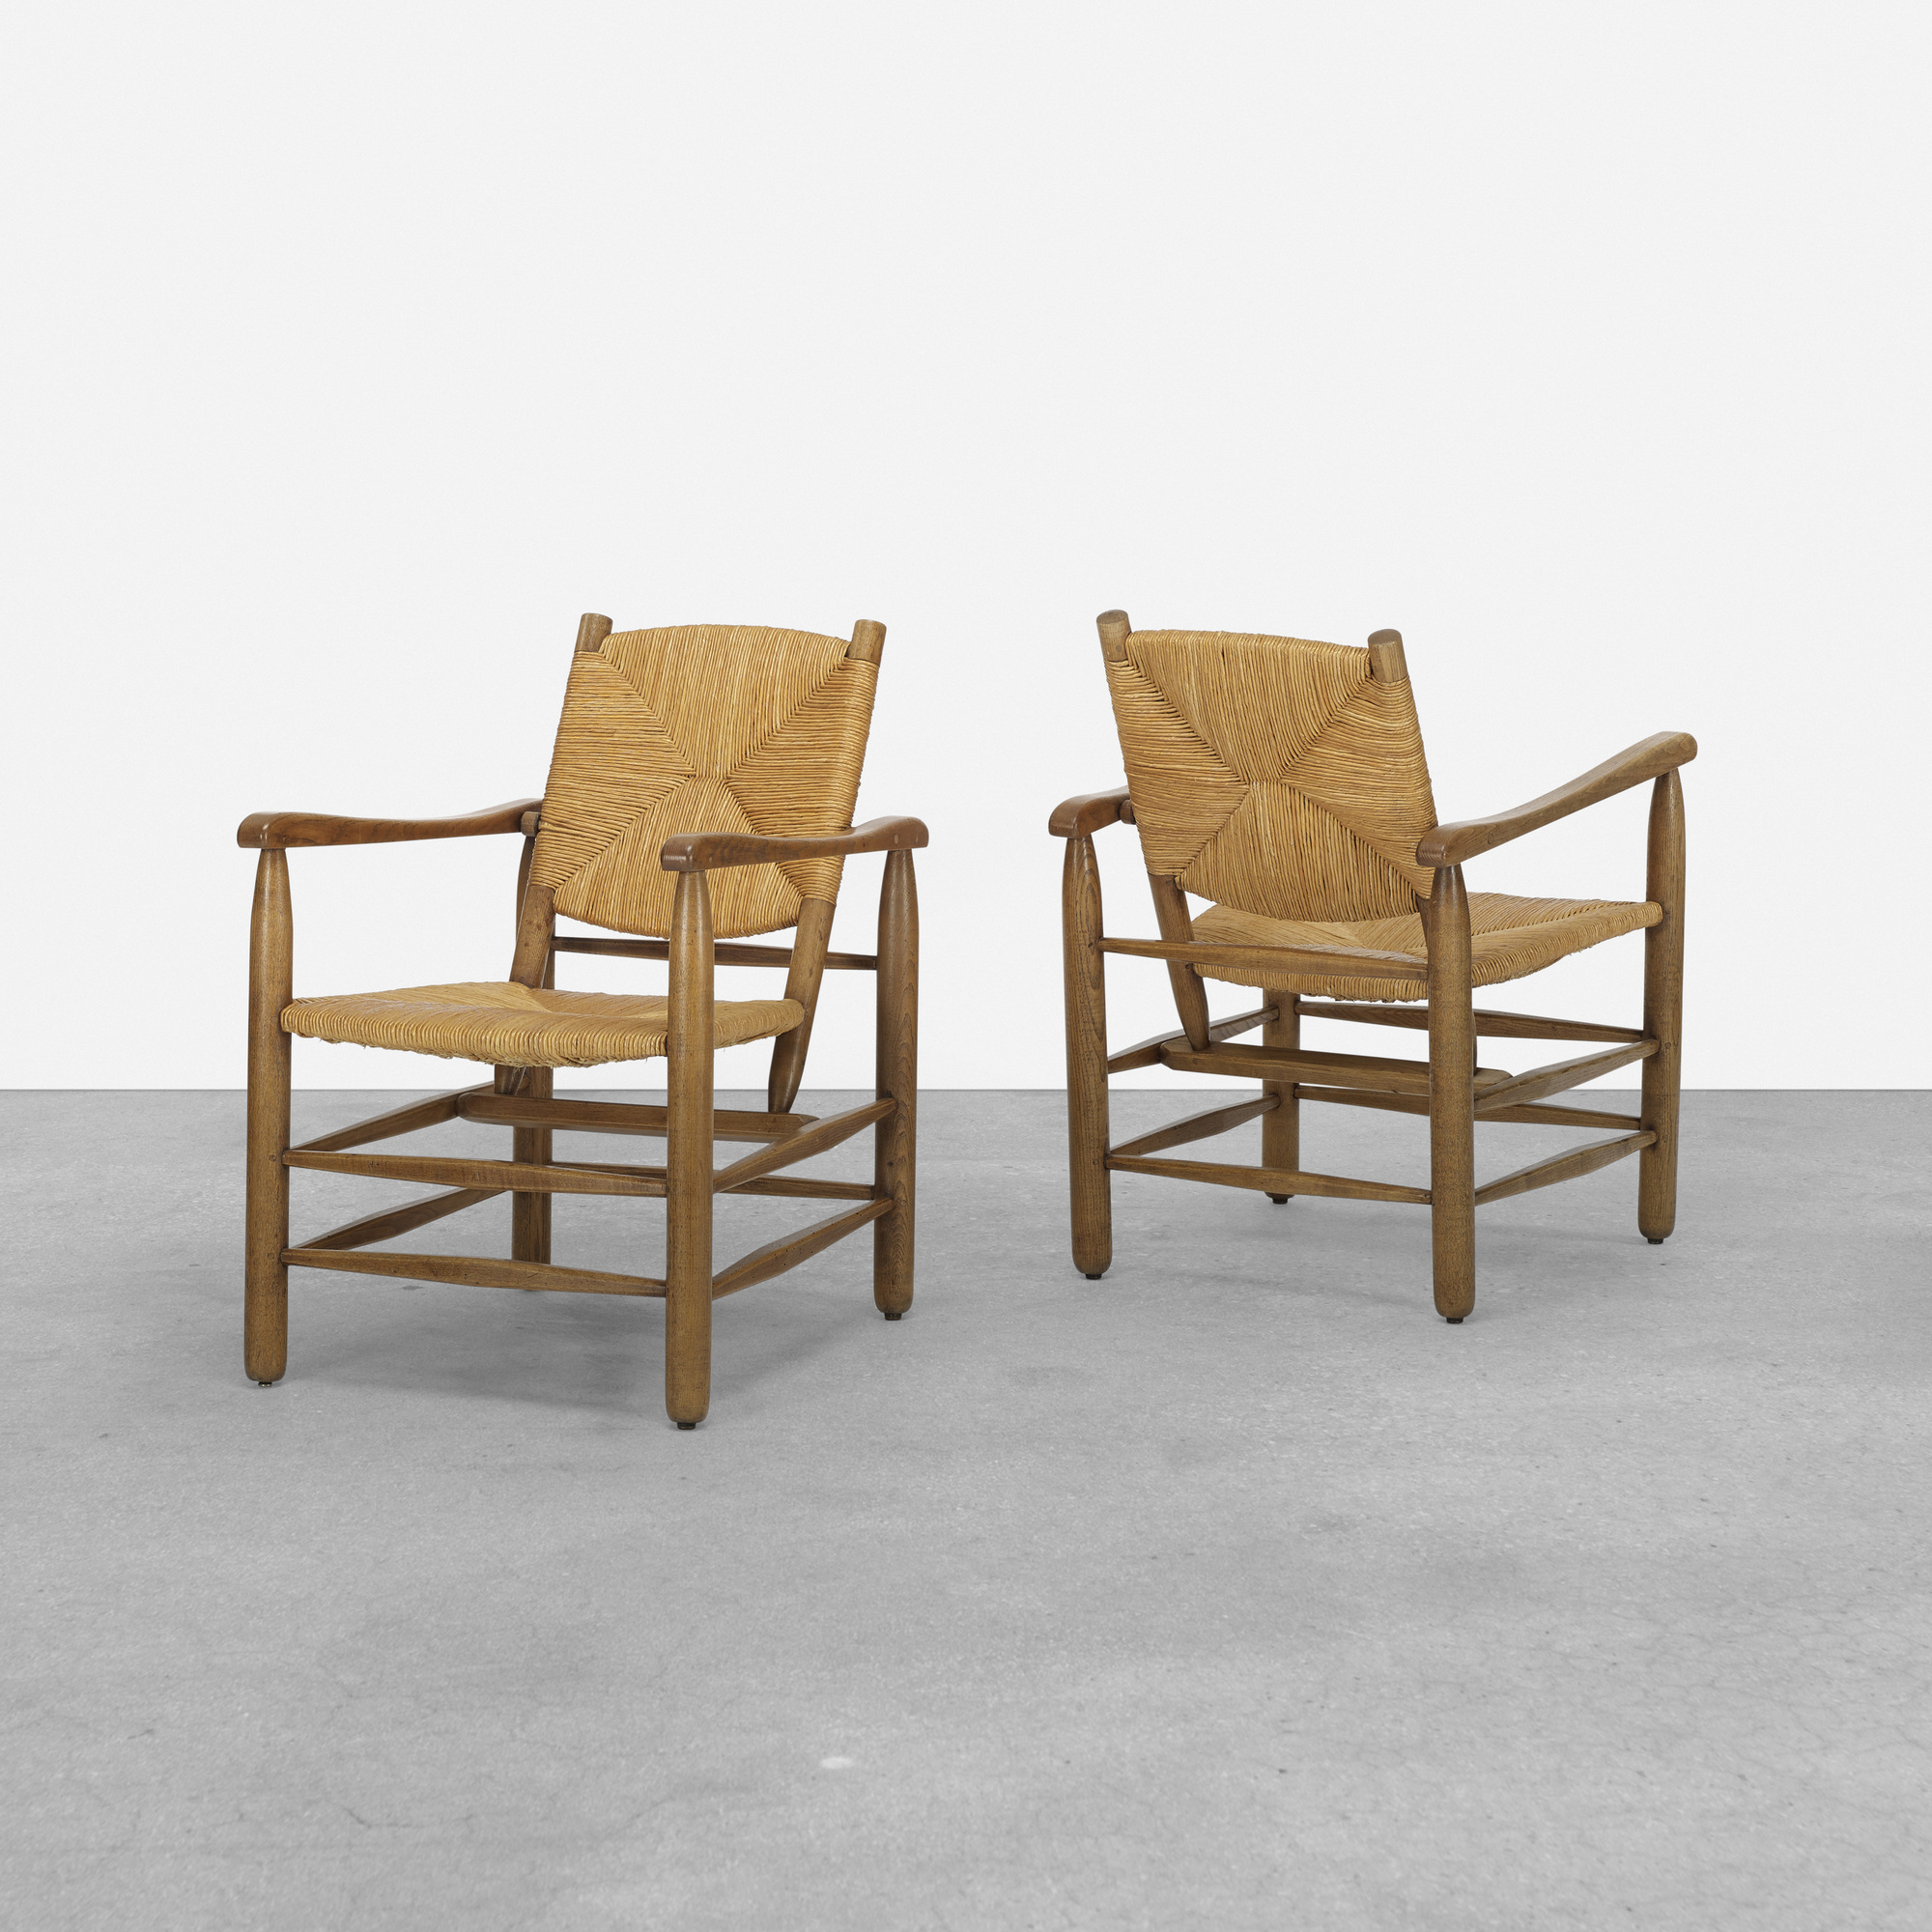 124: Charlotte Perriand / lounge chairs, pair (1 of 1)